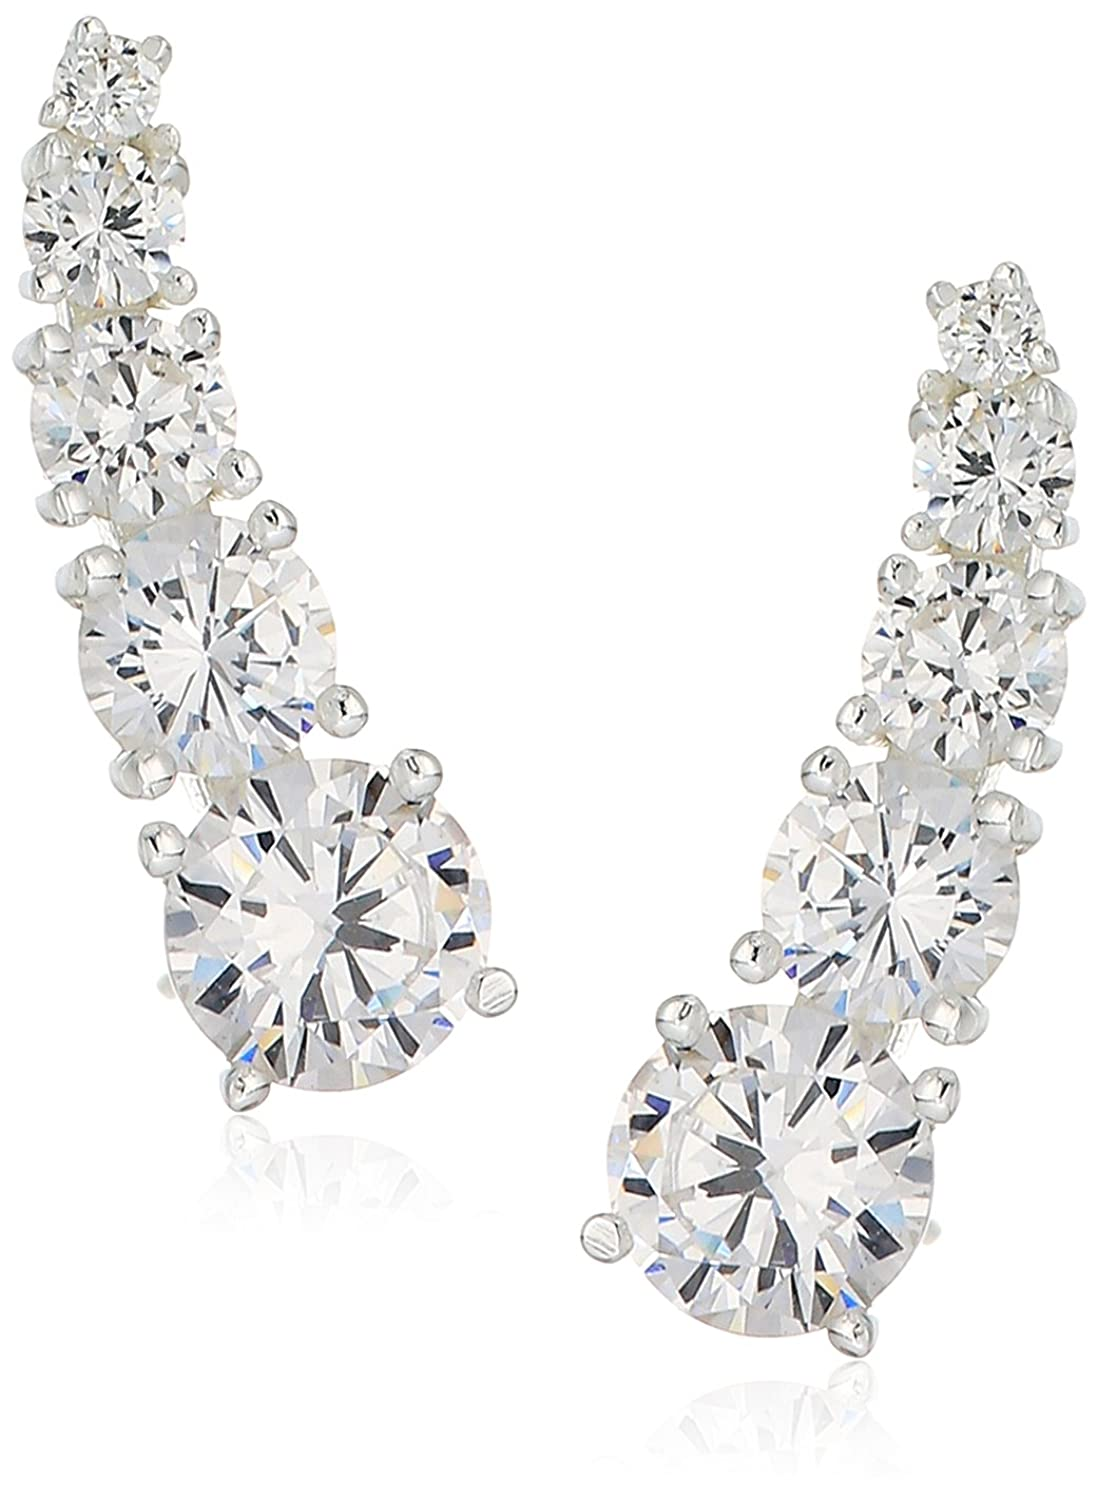 925 Sterling Silver AAA Cubic Zirconia Graduated Ear Cuffs (3.38 cttw)